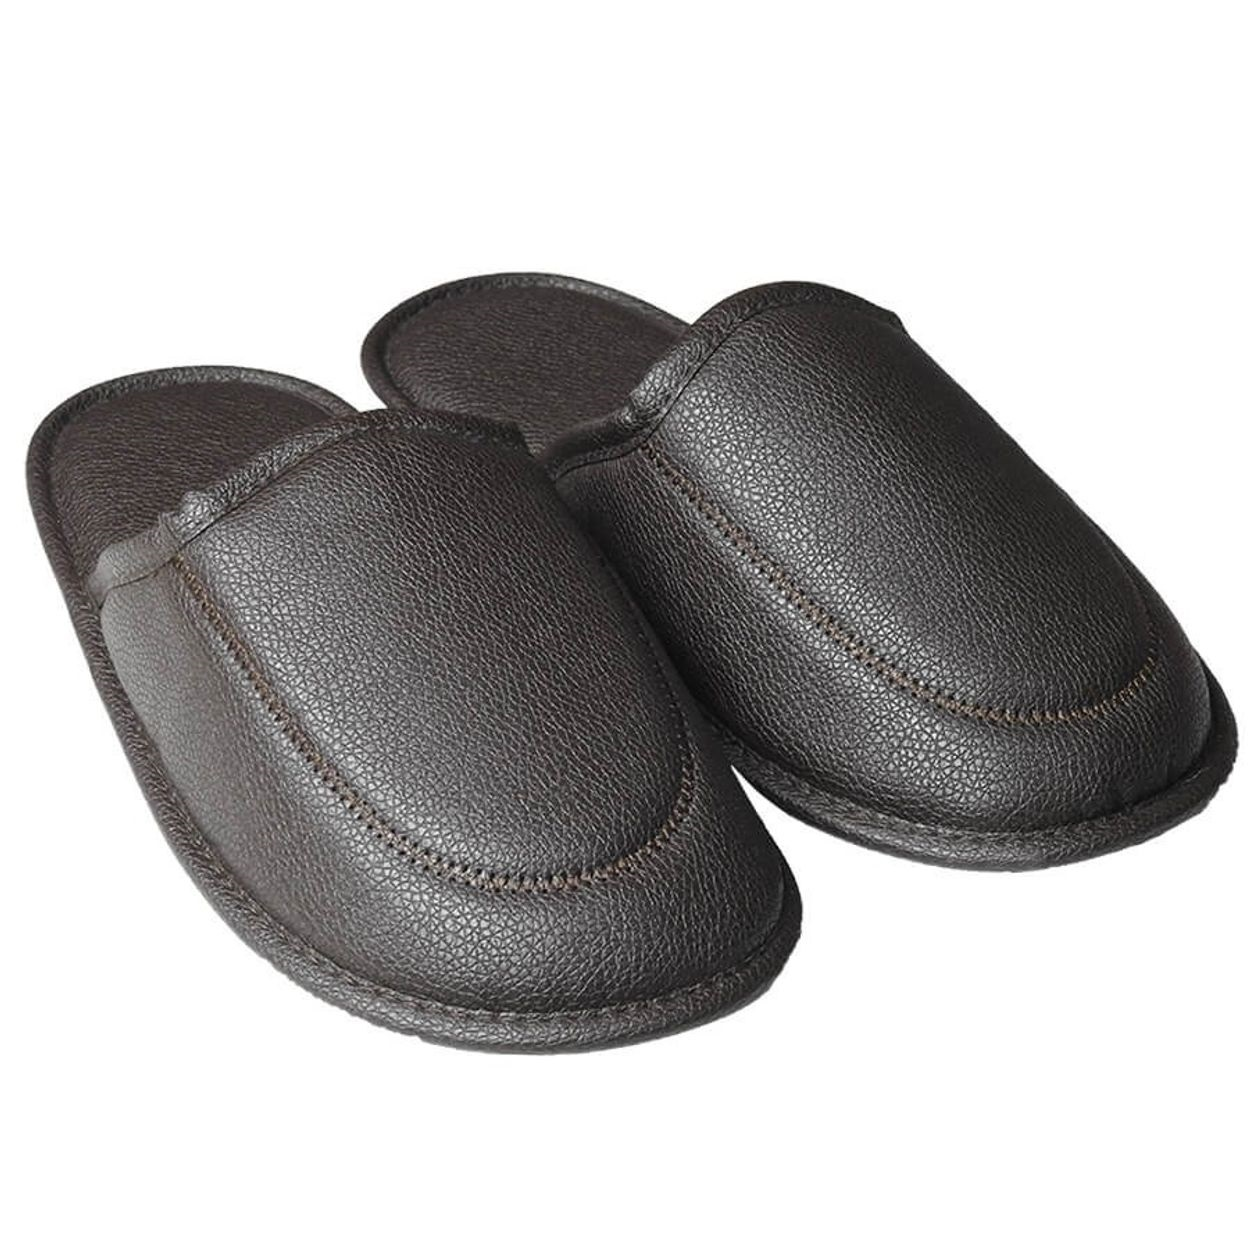 Chinelo Slippers Donna Laço Man Marrom 41/42